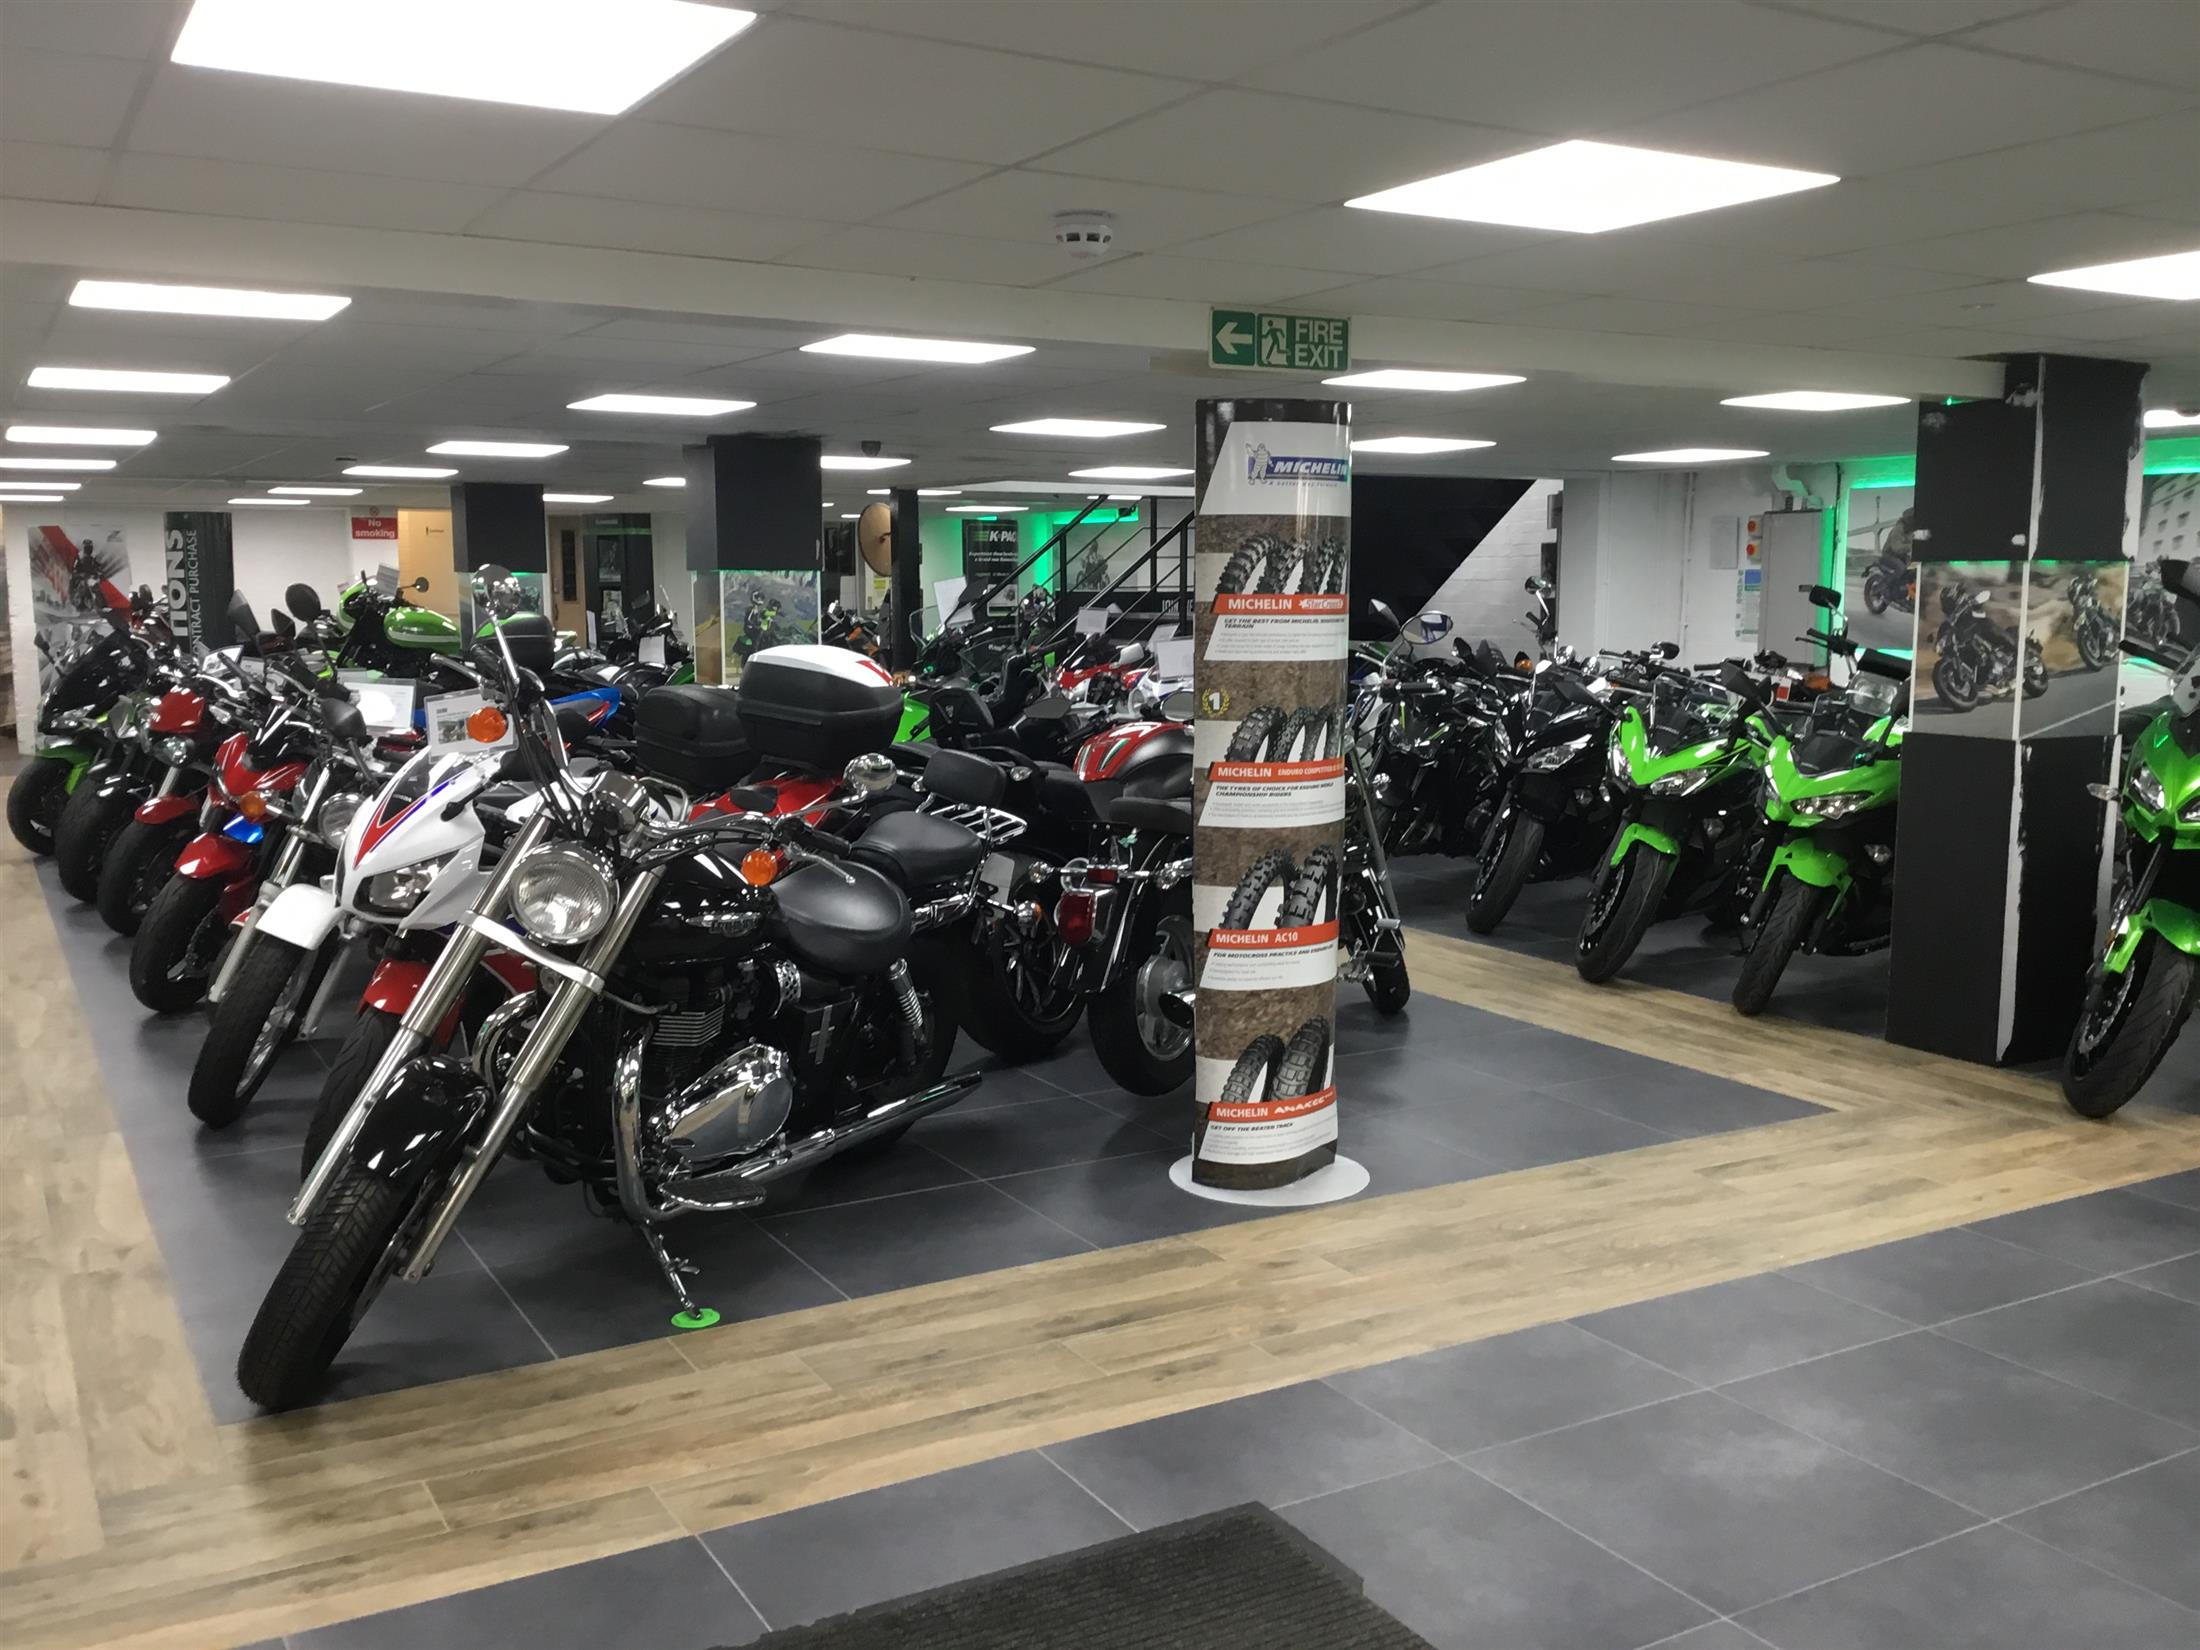 Alf S Motorcycles Kawasaki Dealer In Worthing West Sussex